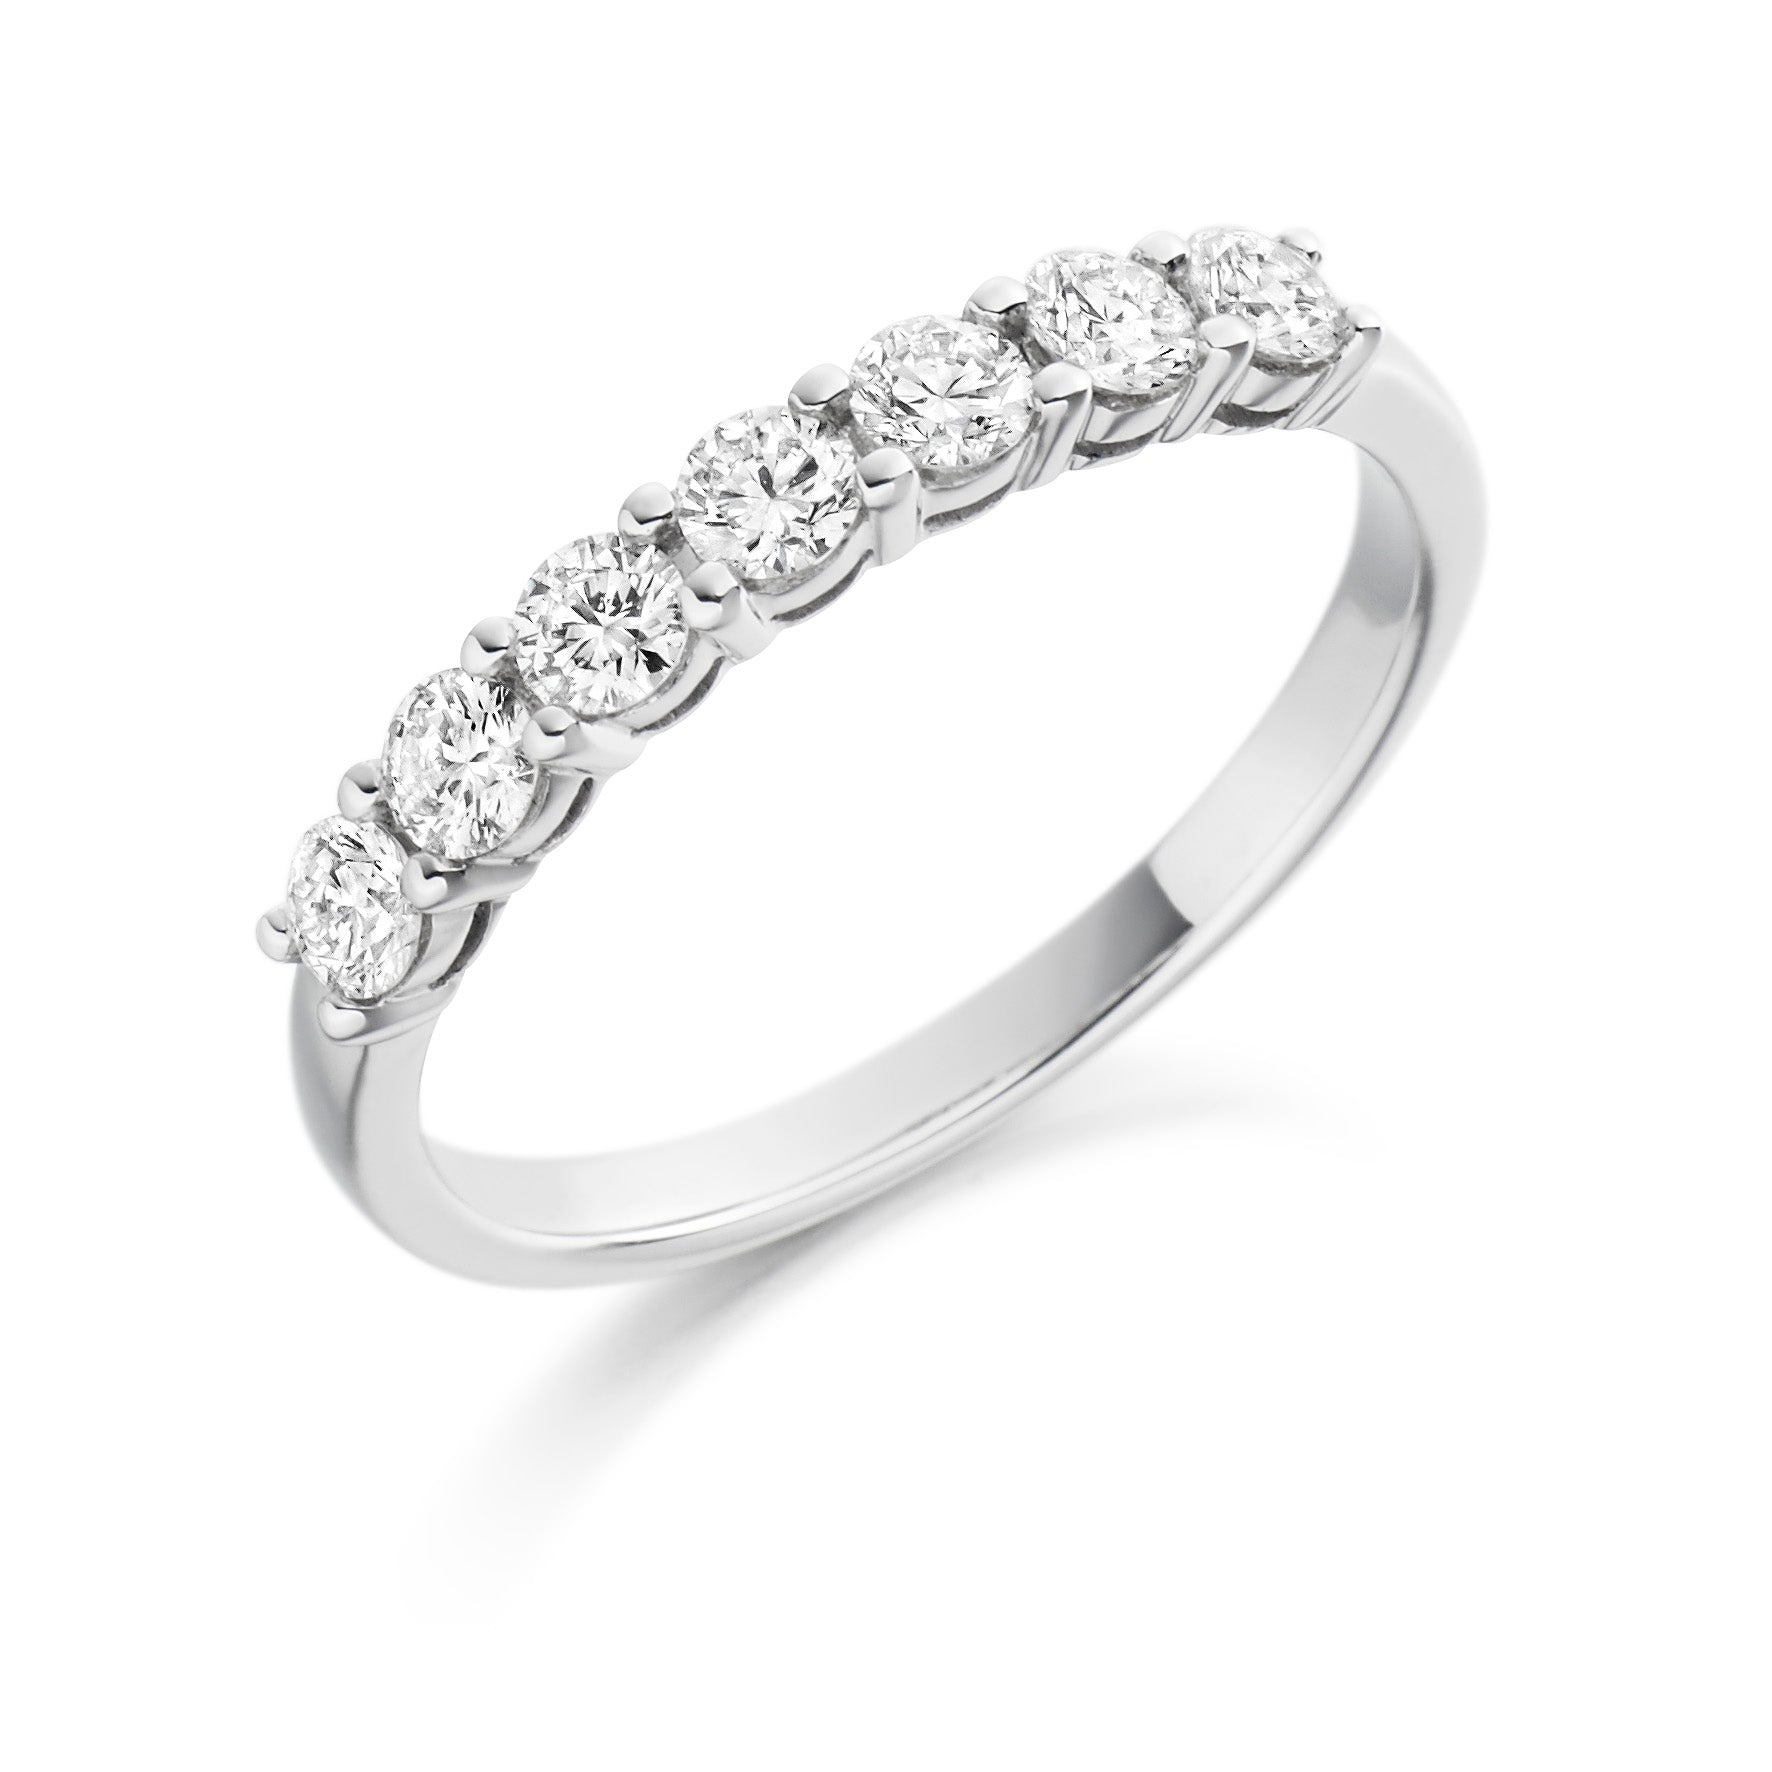 18ct White Gold 0.5ct Round Brilliant Cut Diamond Vintage Eternity Ring